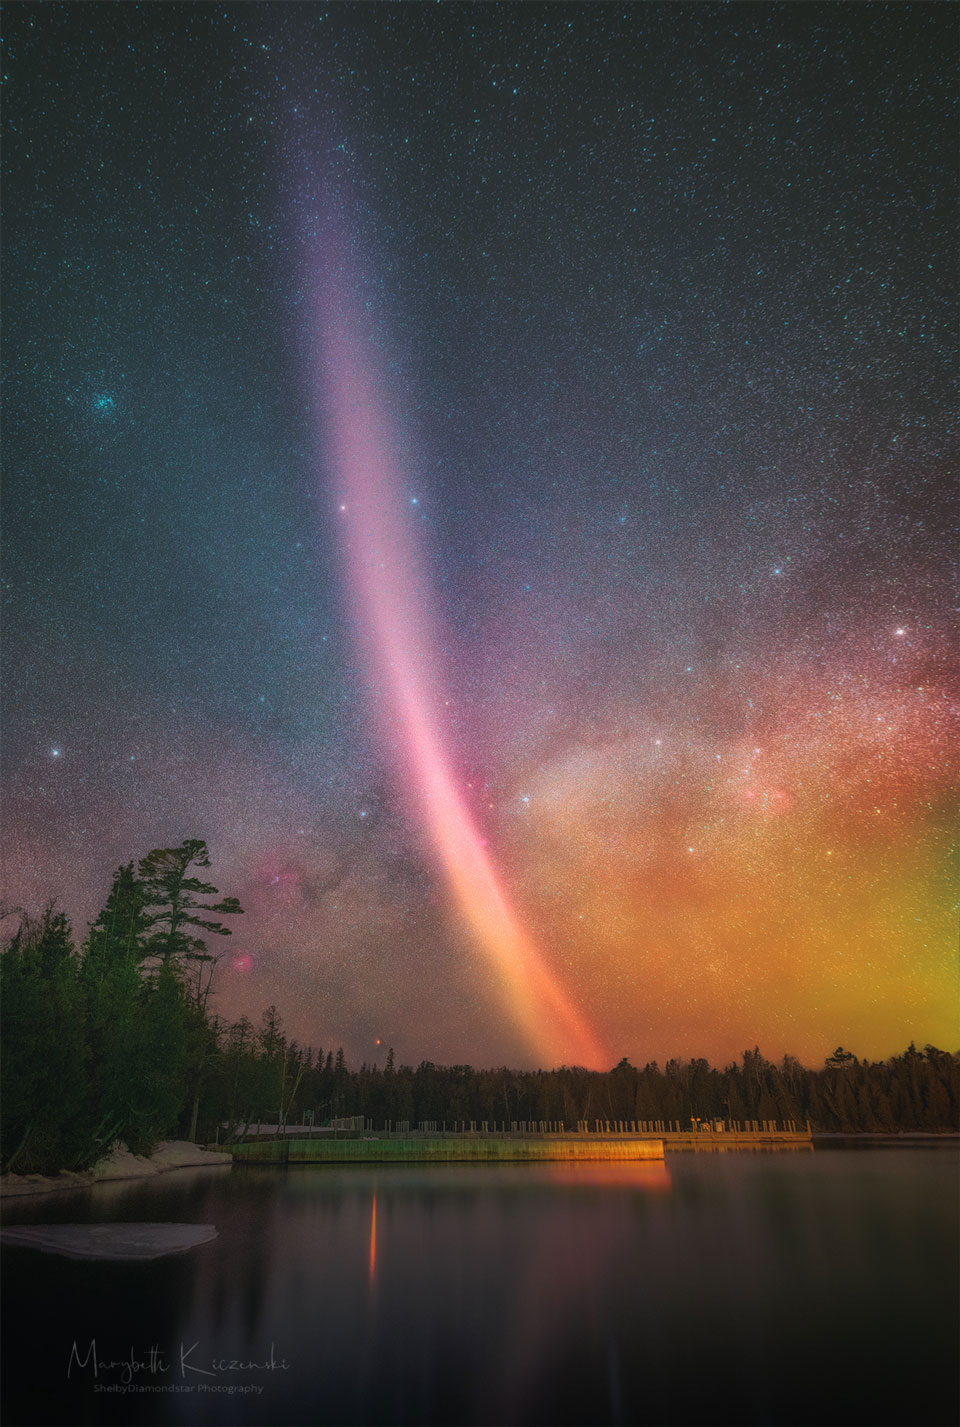 A picture of a STEVE arc over Copper Harbor, Michigan, with the Milky Way across the background.  Please see the explanation for more detailed information.